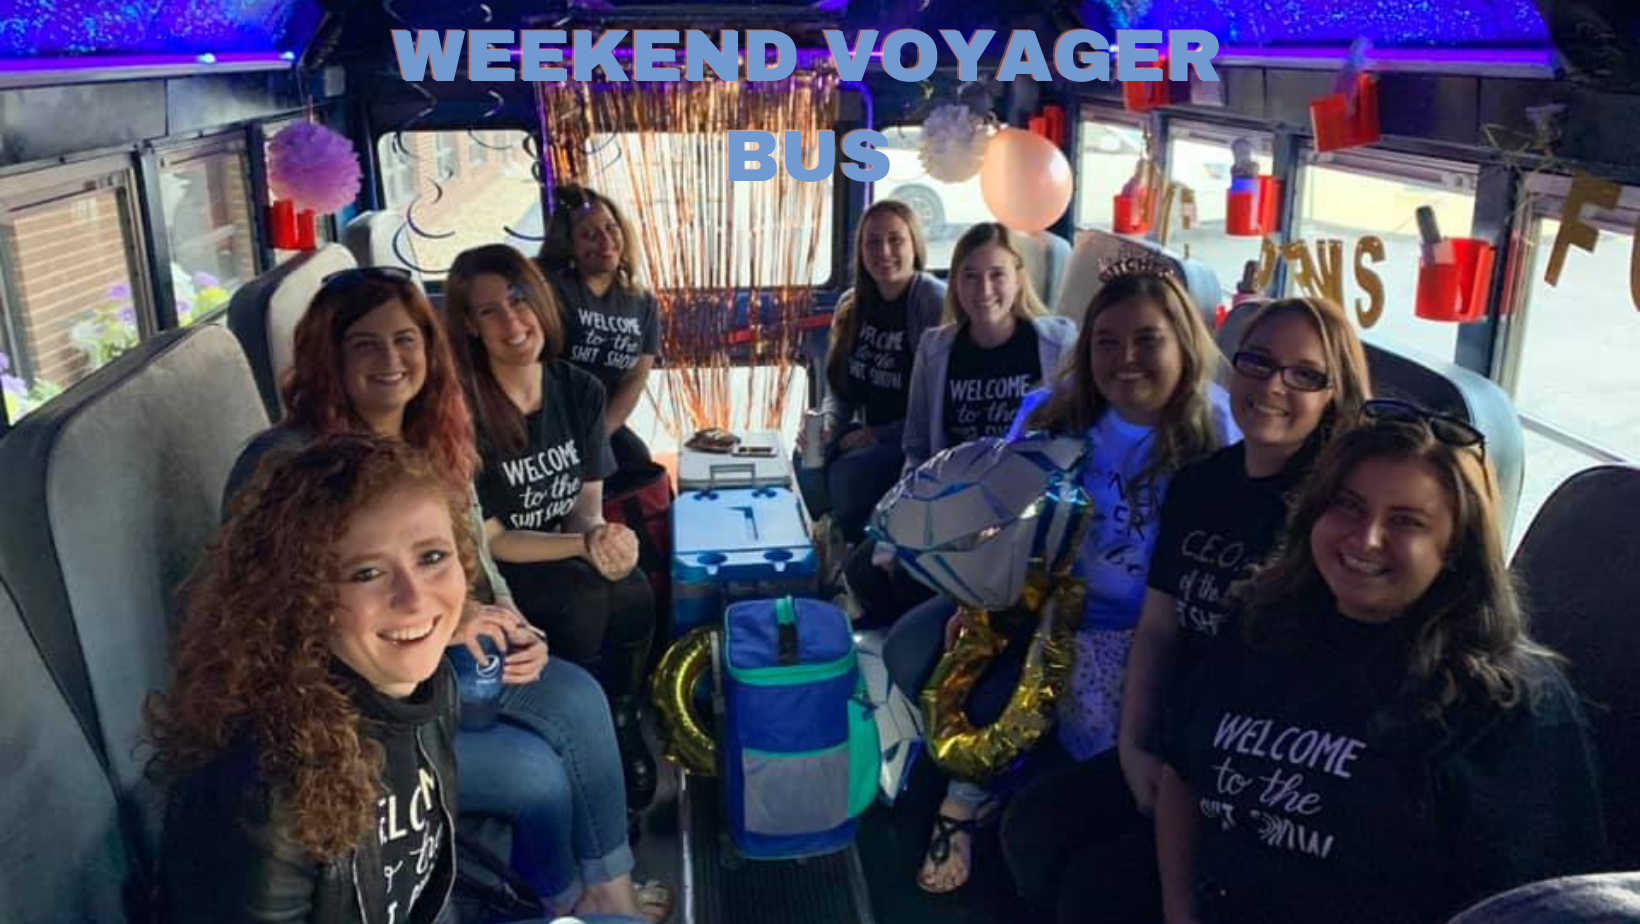 Copy of Weekend voyager bus